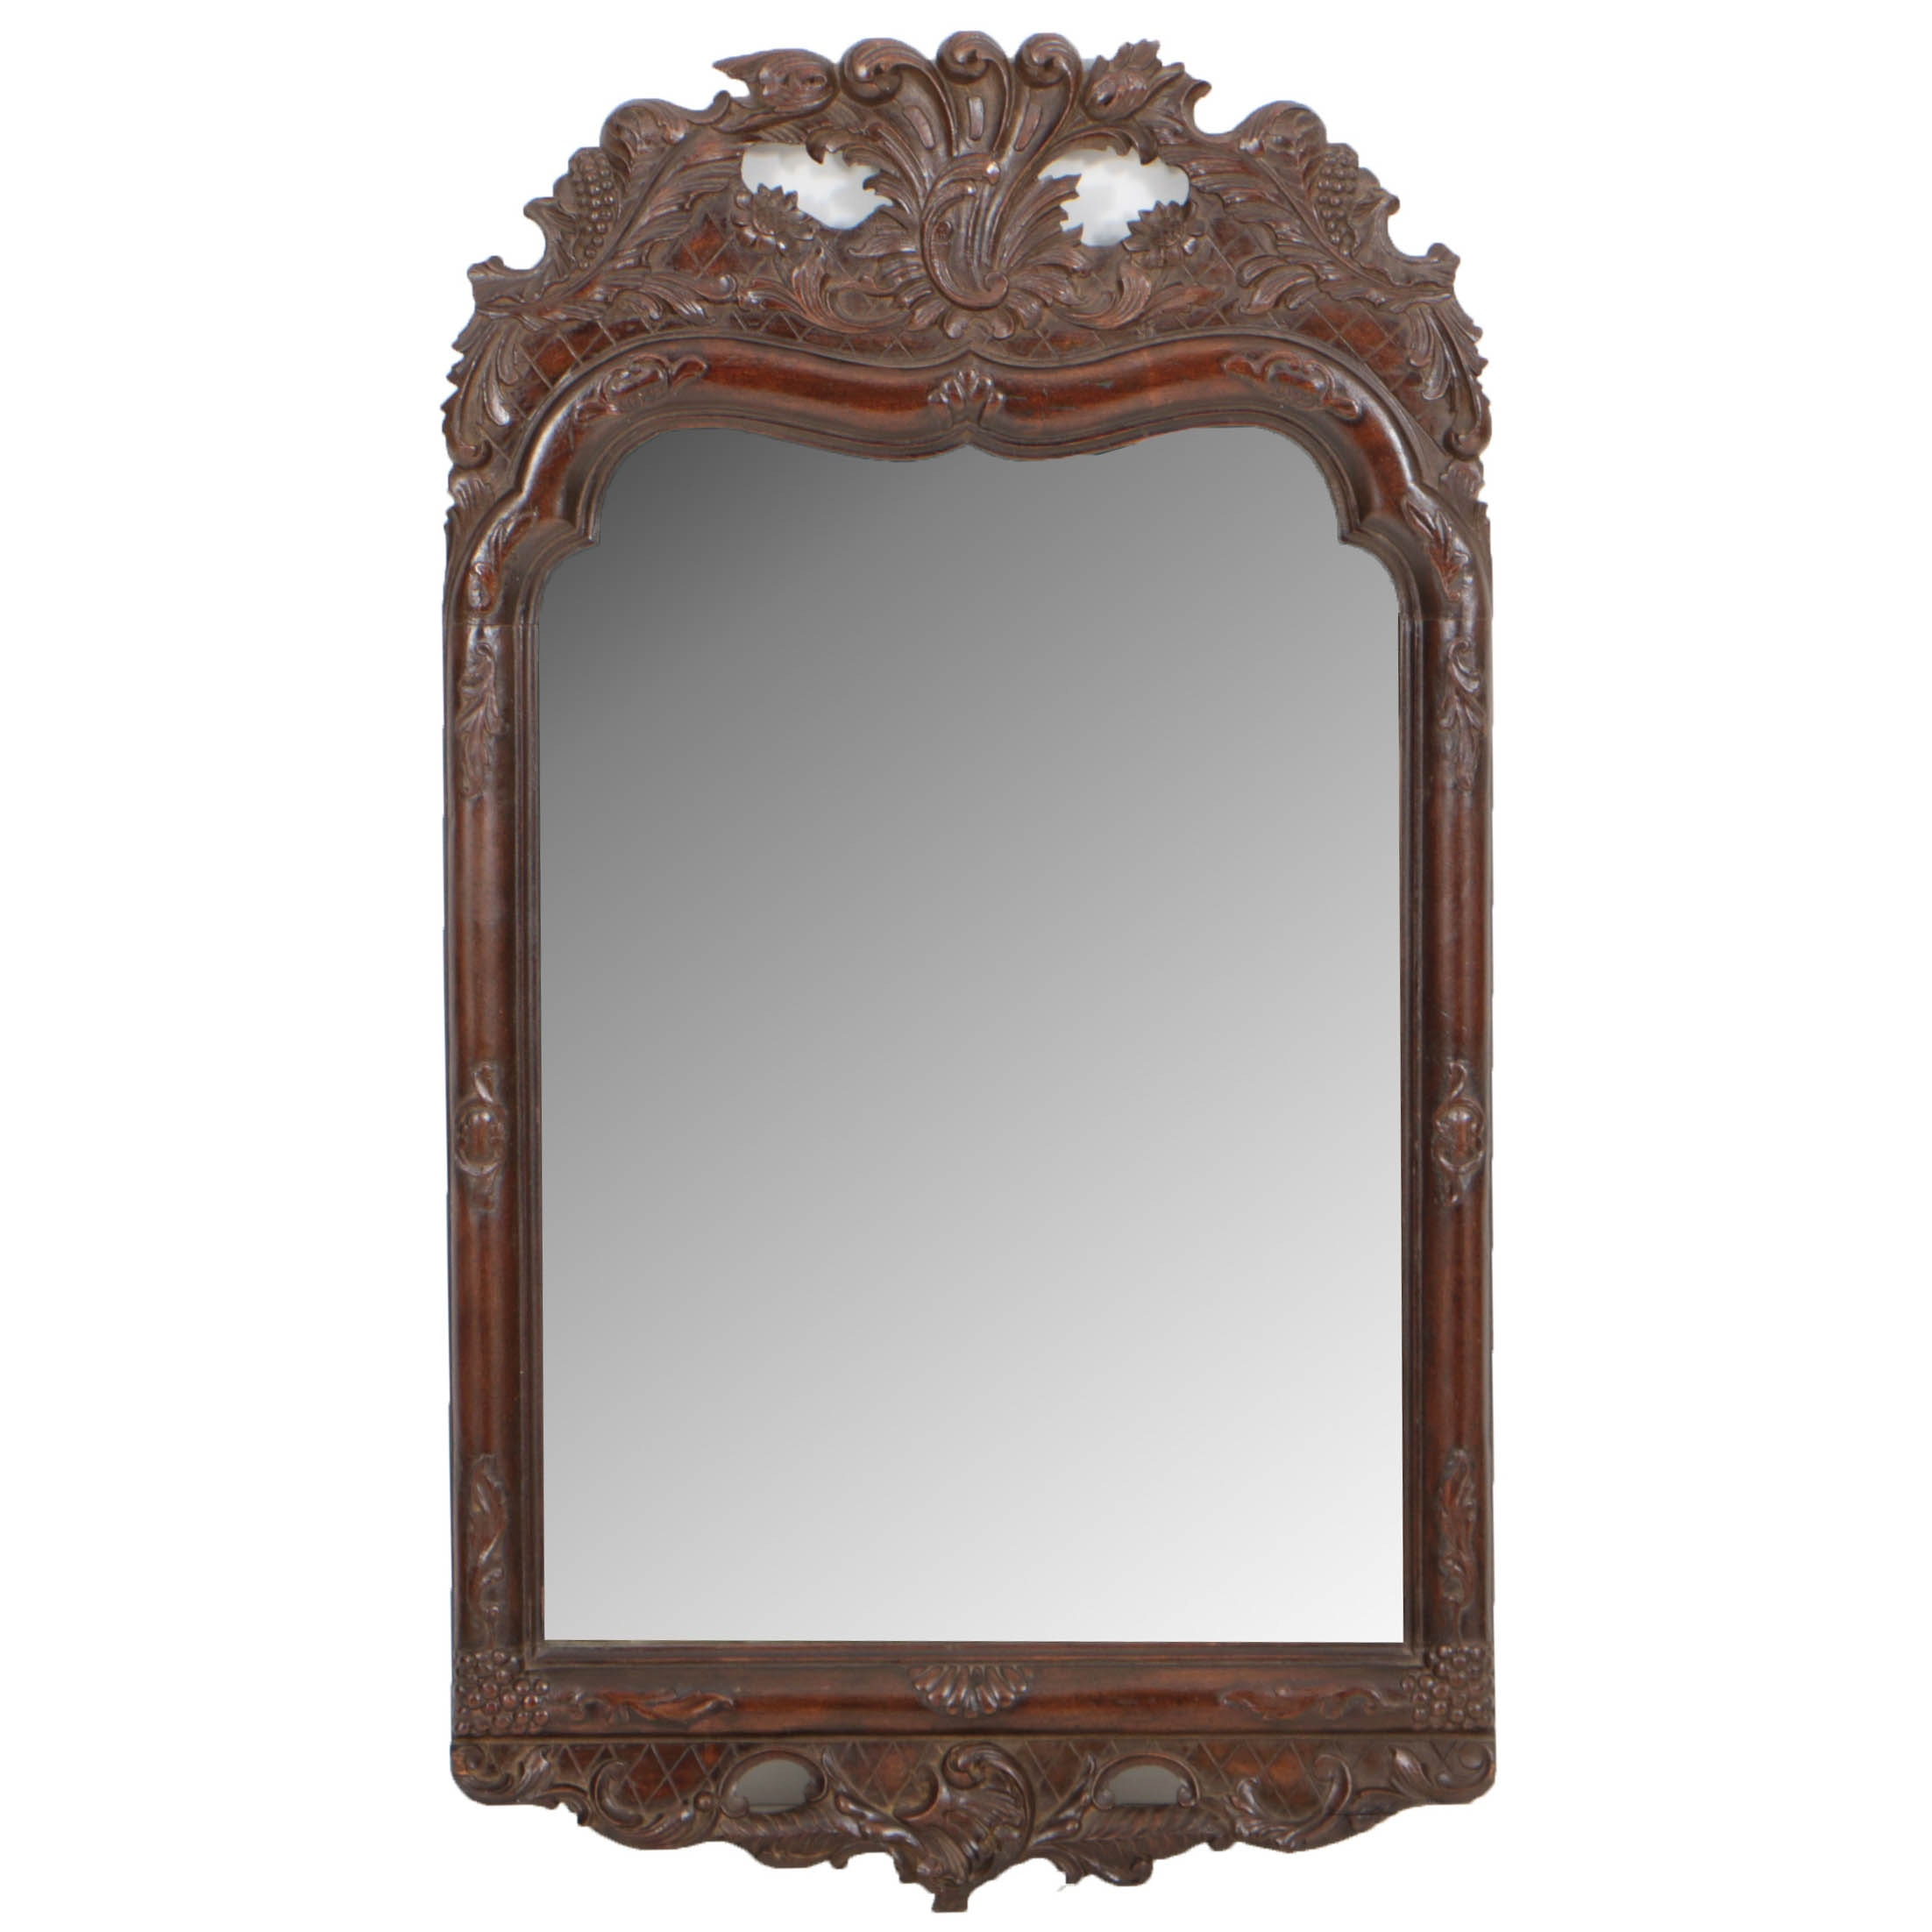 French Provincial Style Rocaille-Carved Mirror, 20th Century